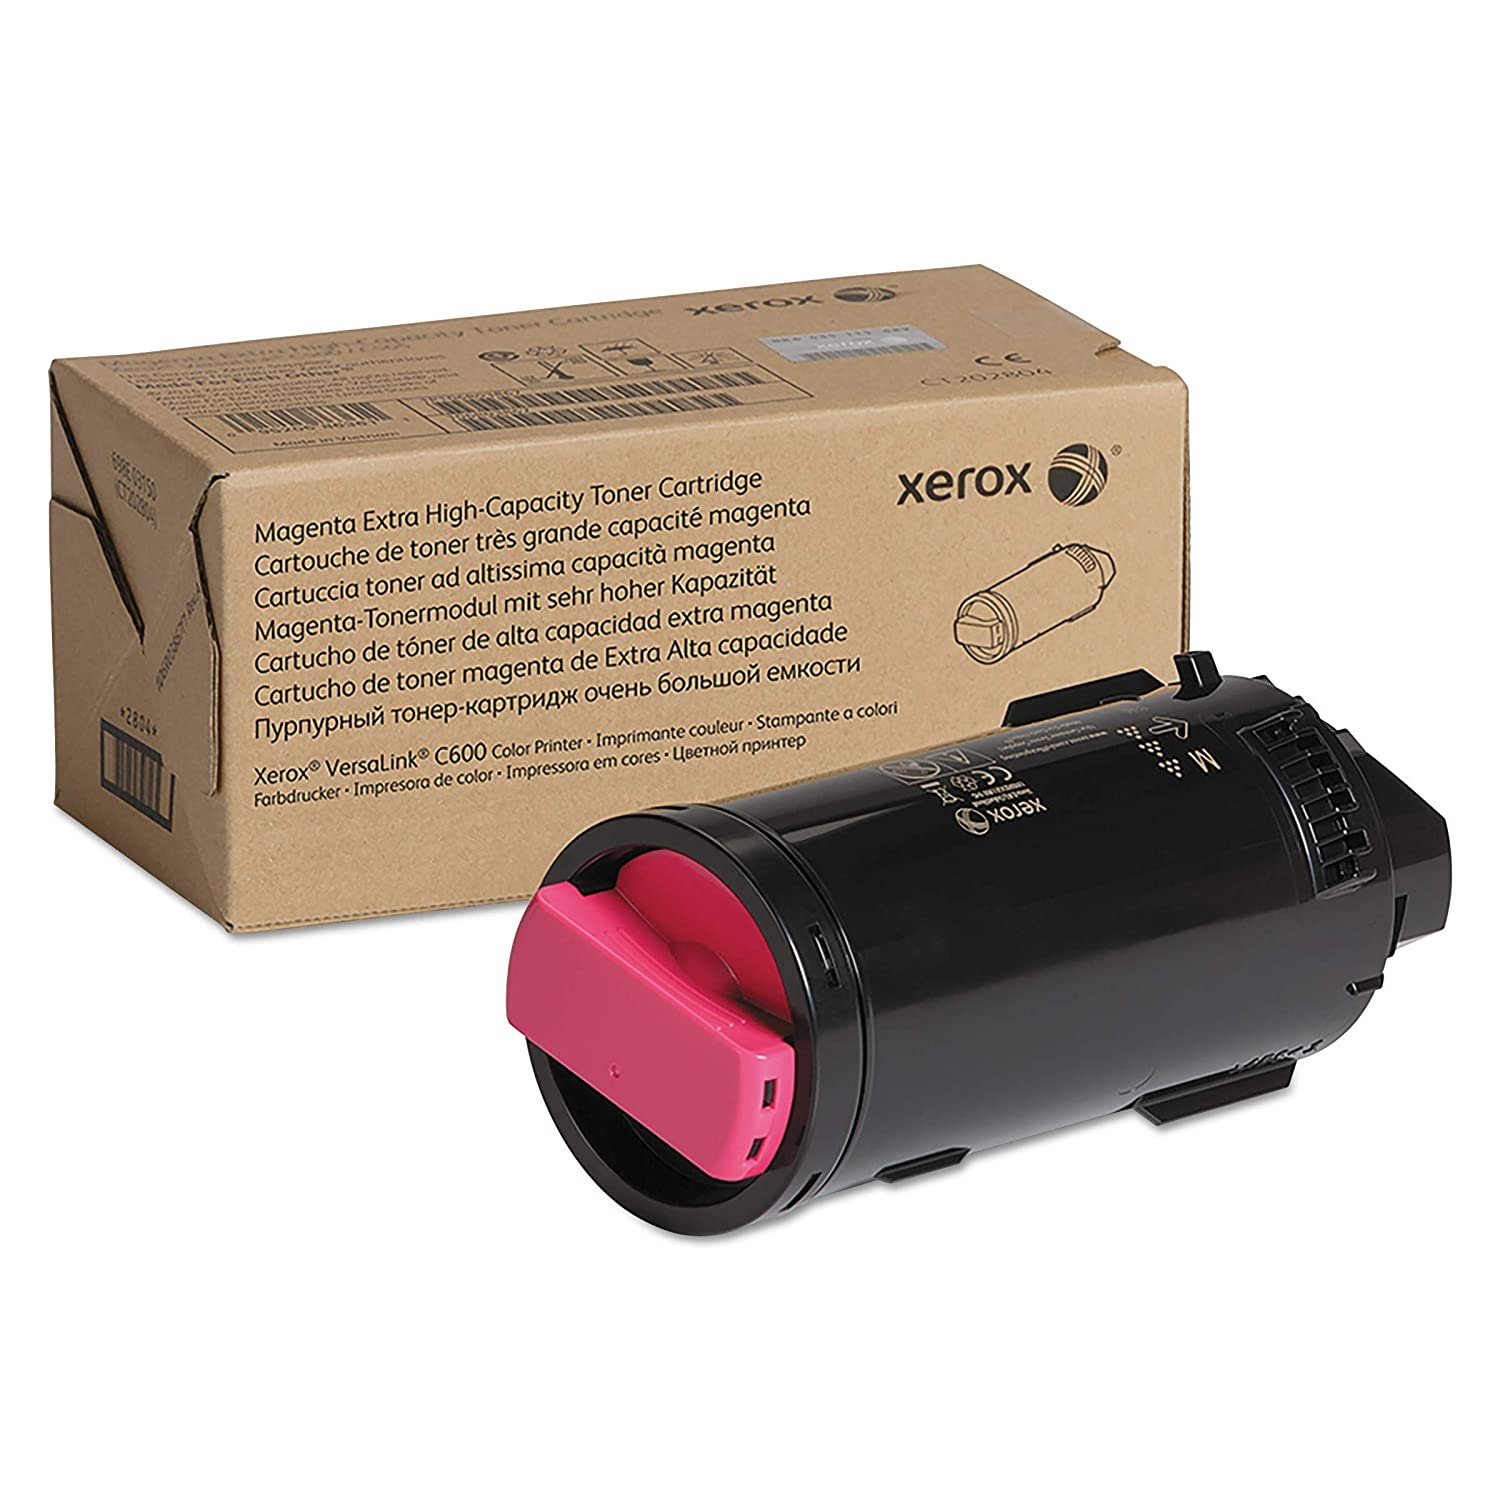 Amazon.com: Xerox 106R04007 106R04007 Extra High-Yield Toner ...